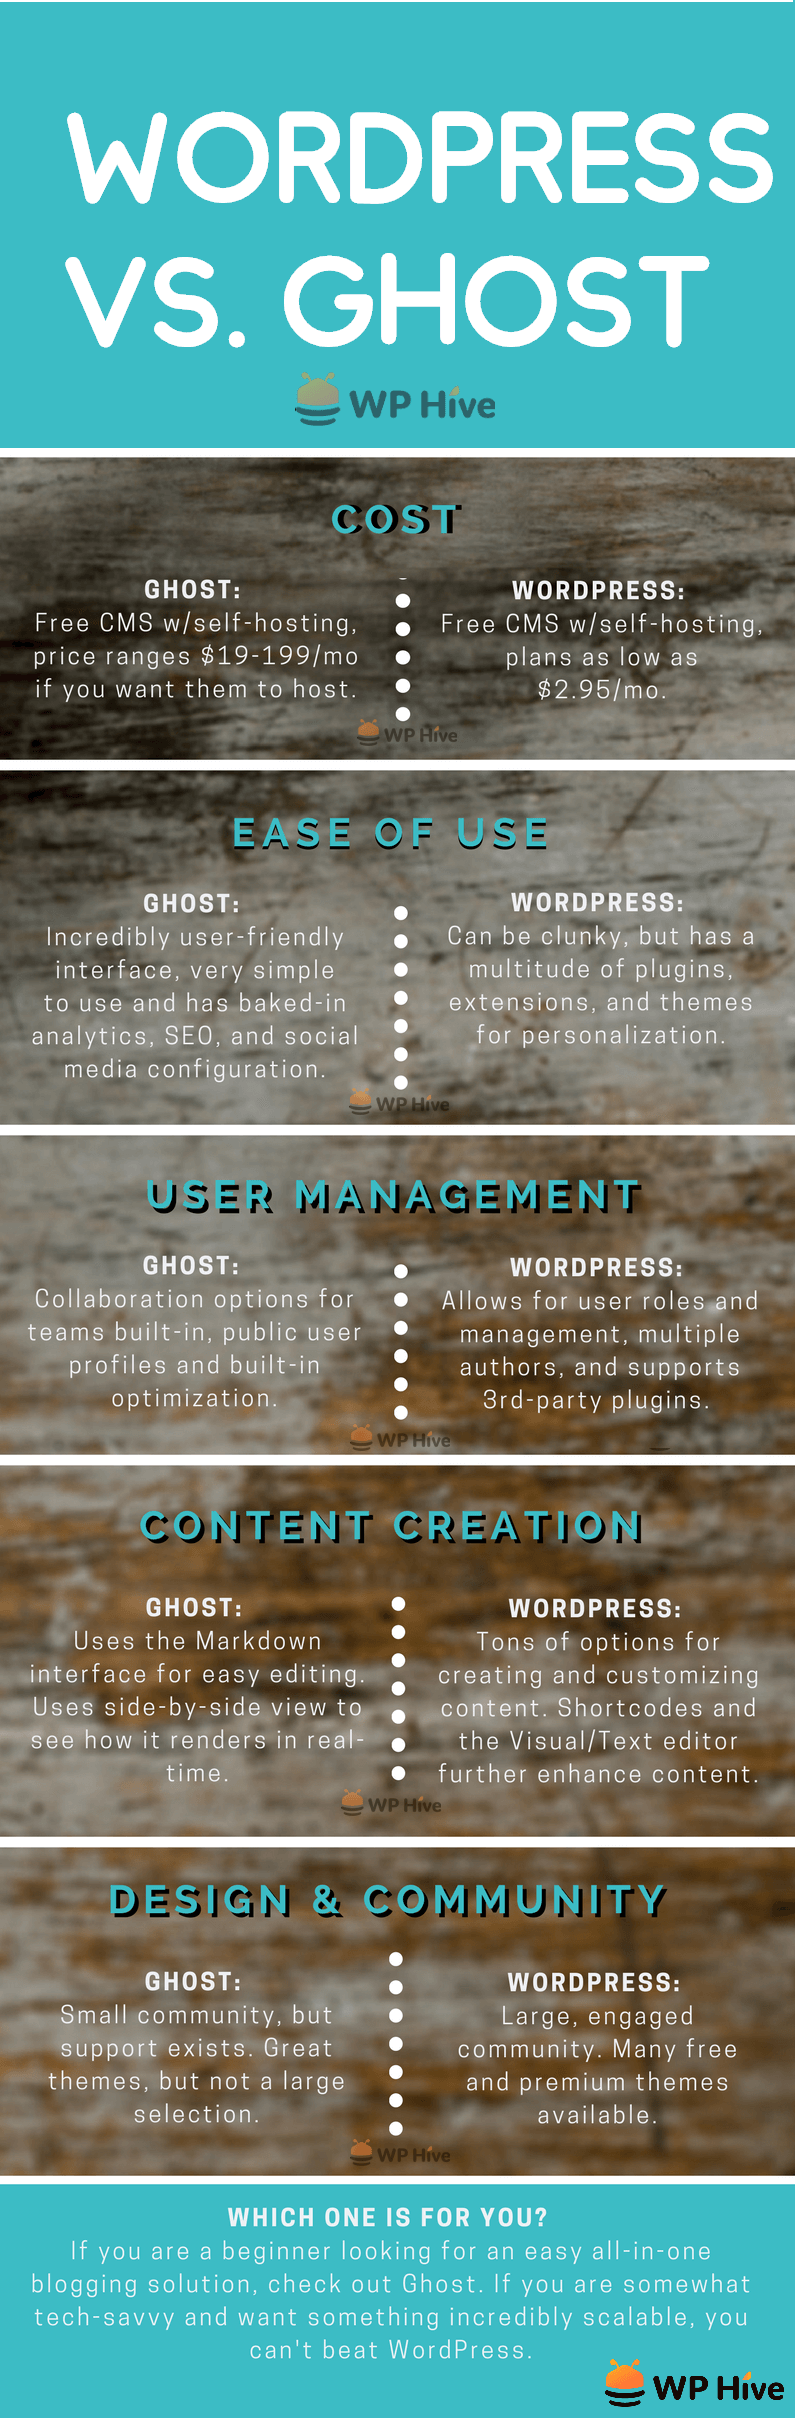 wordpress vs ghost infographic